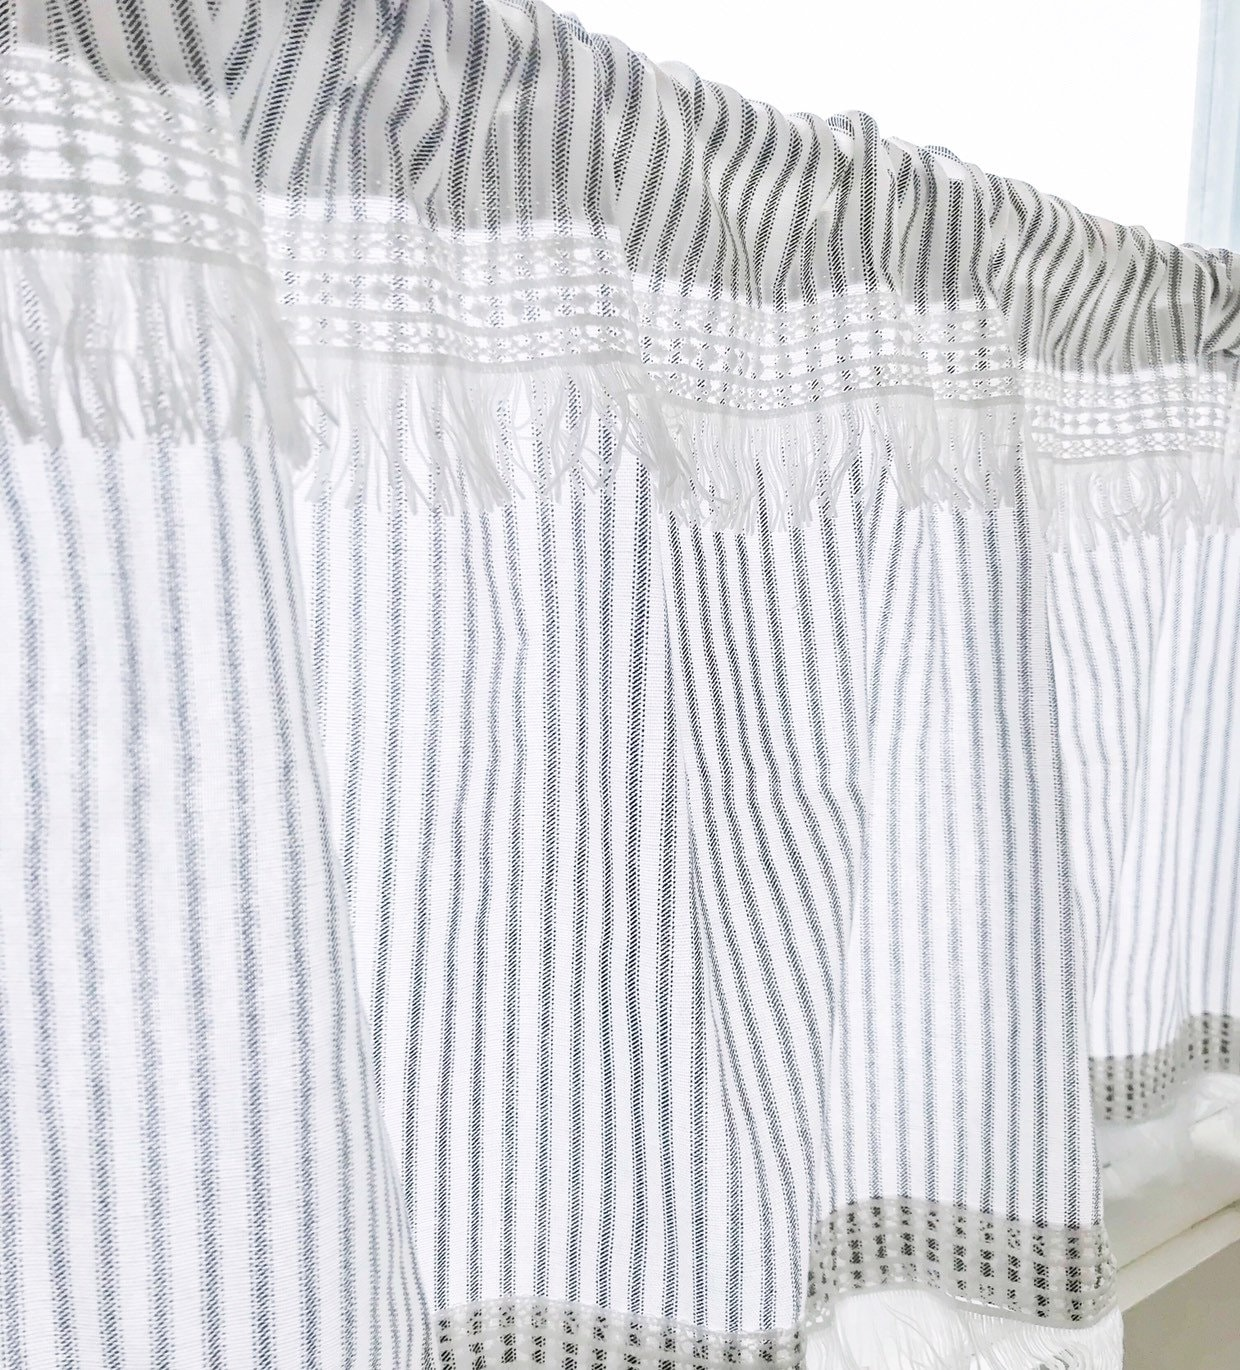 Cafe Curtains, Ticking Striped, Curtains, with white boho trimming, Kitchen  Curtains, Window Treatments, Kitchen Decor